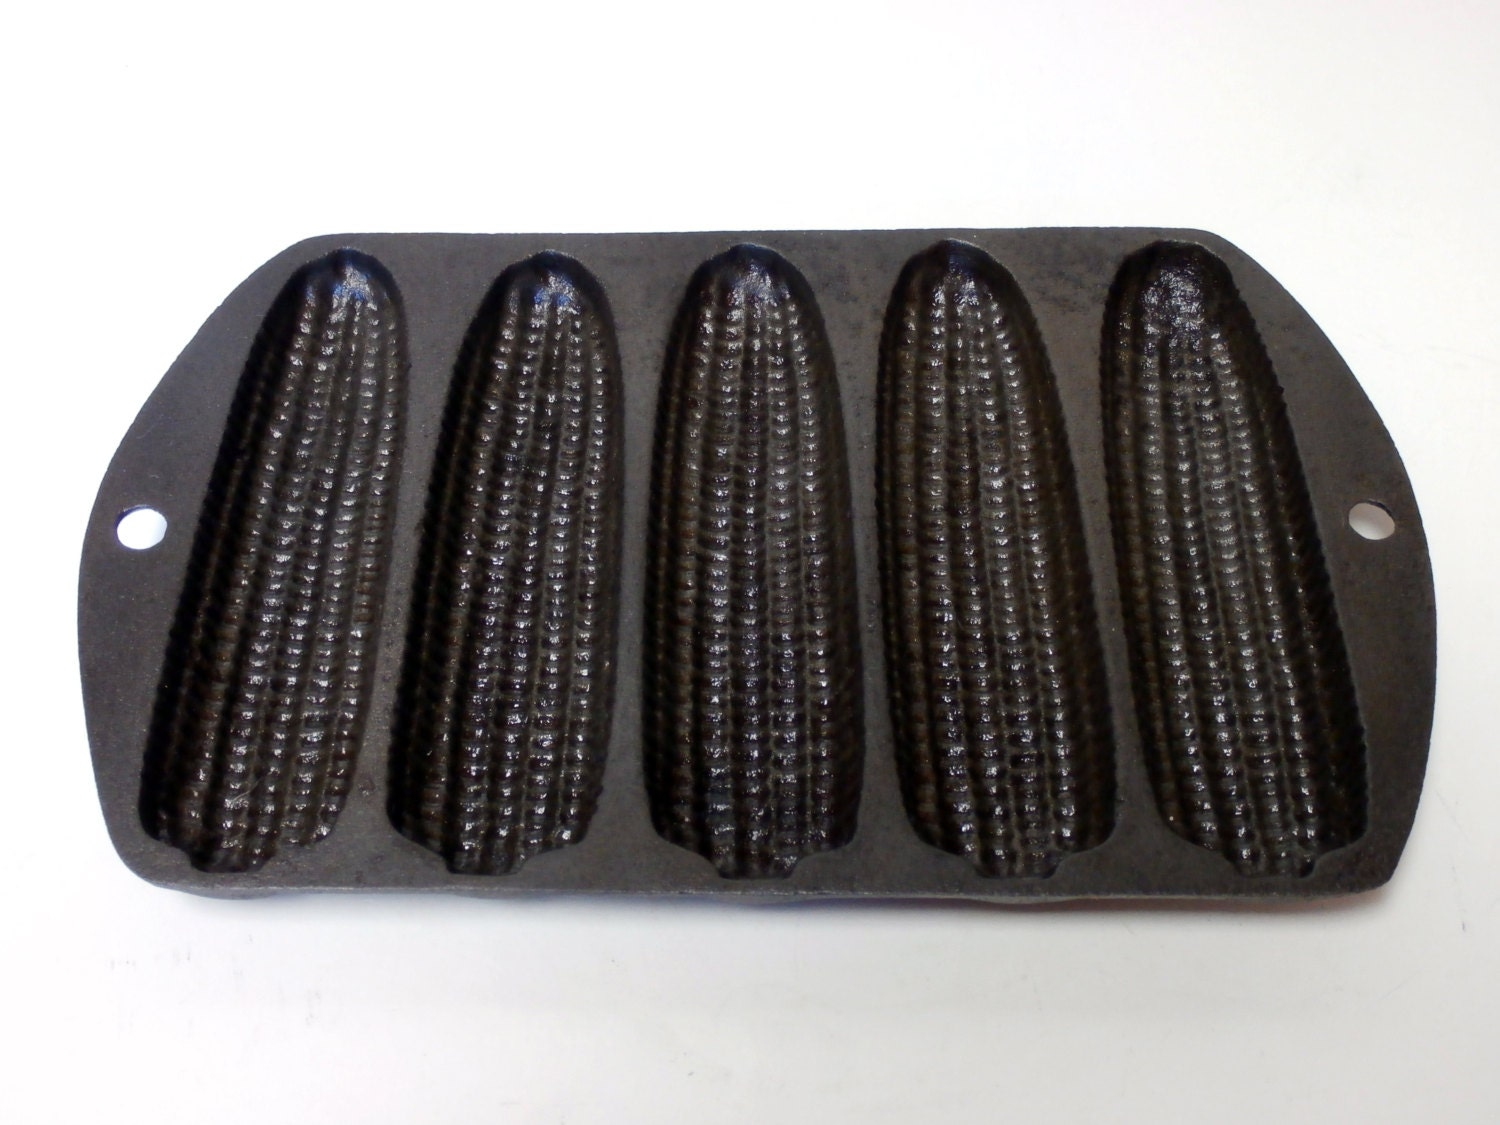 Vintage Cast Iron Cornbread Pan 5 stick by MidnightandMagnolias